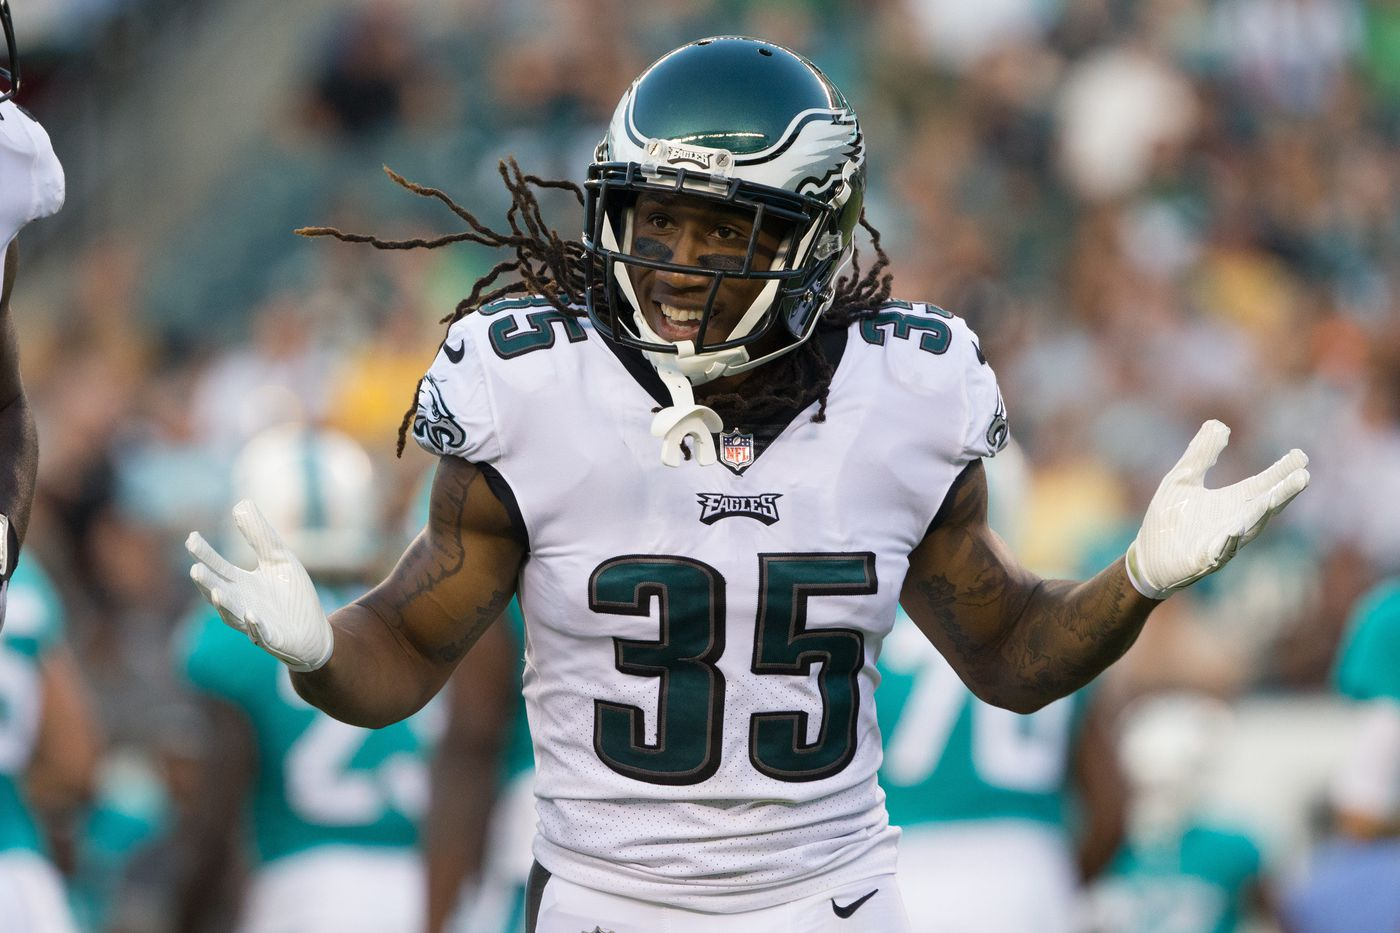 Ronald Darby has a new Eagles jersey number - Bleeding Green Nation